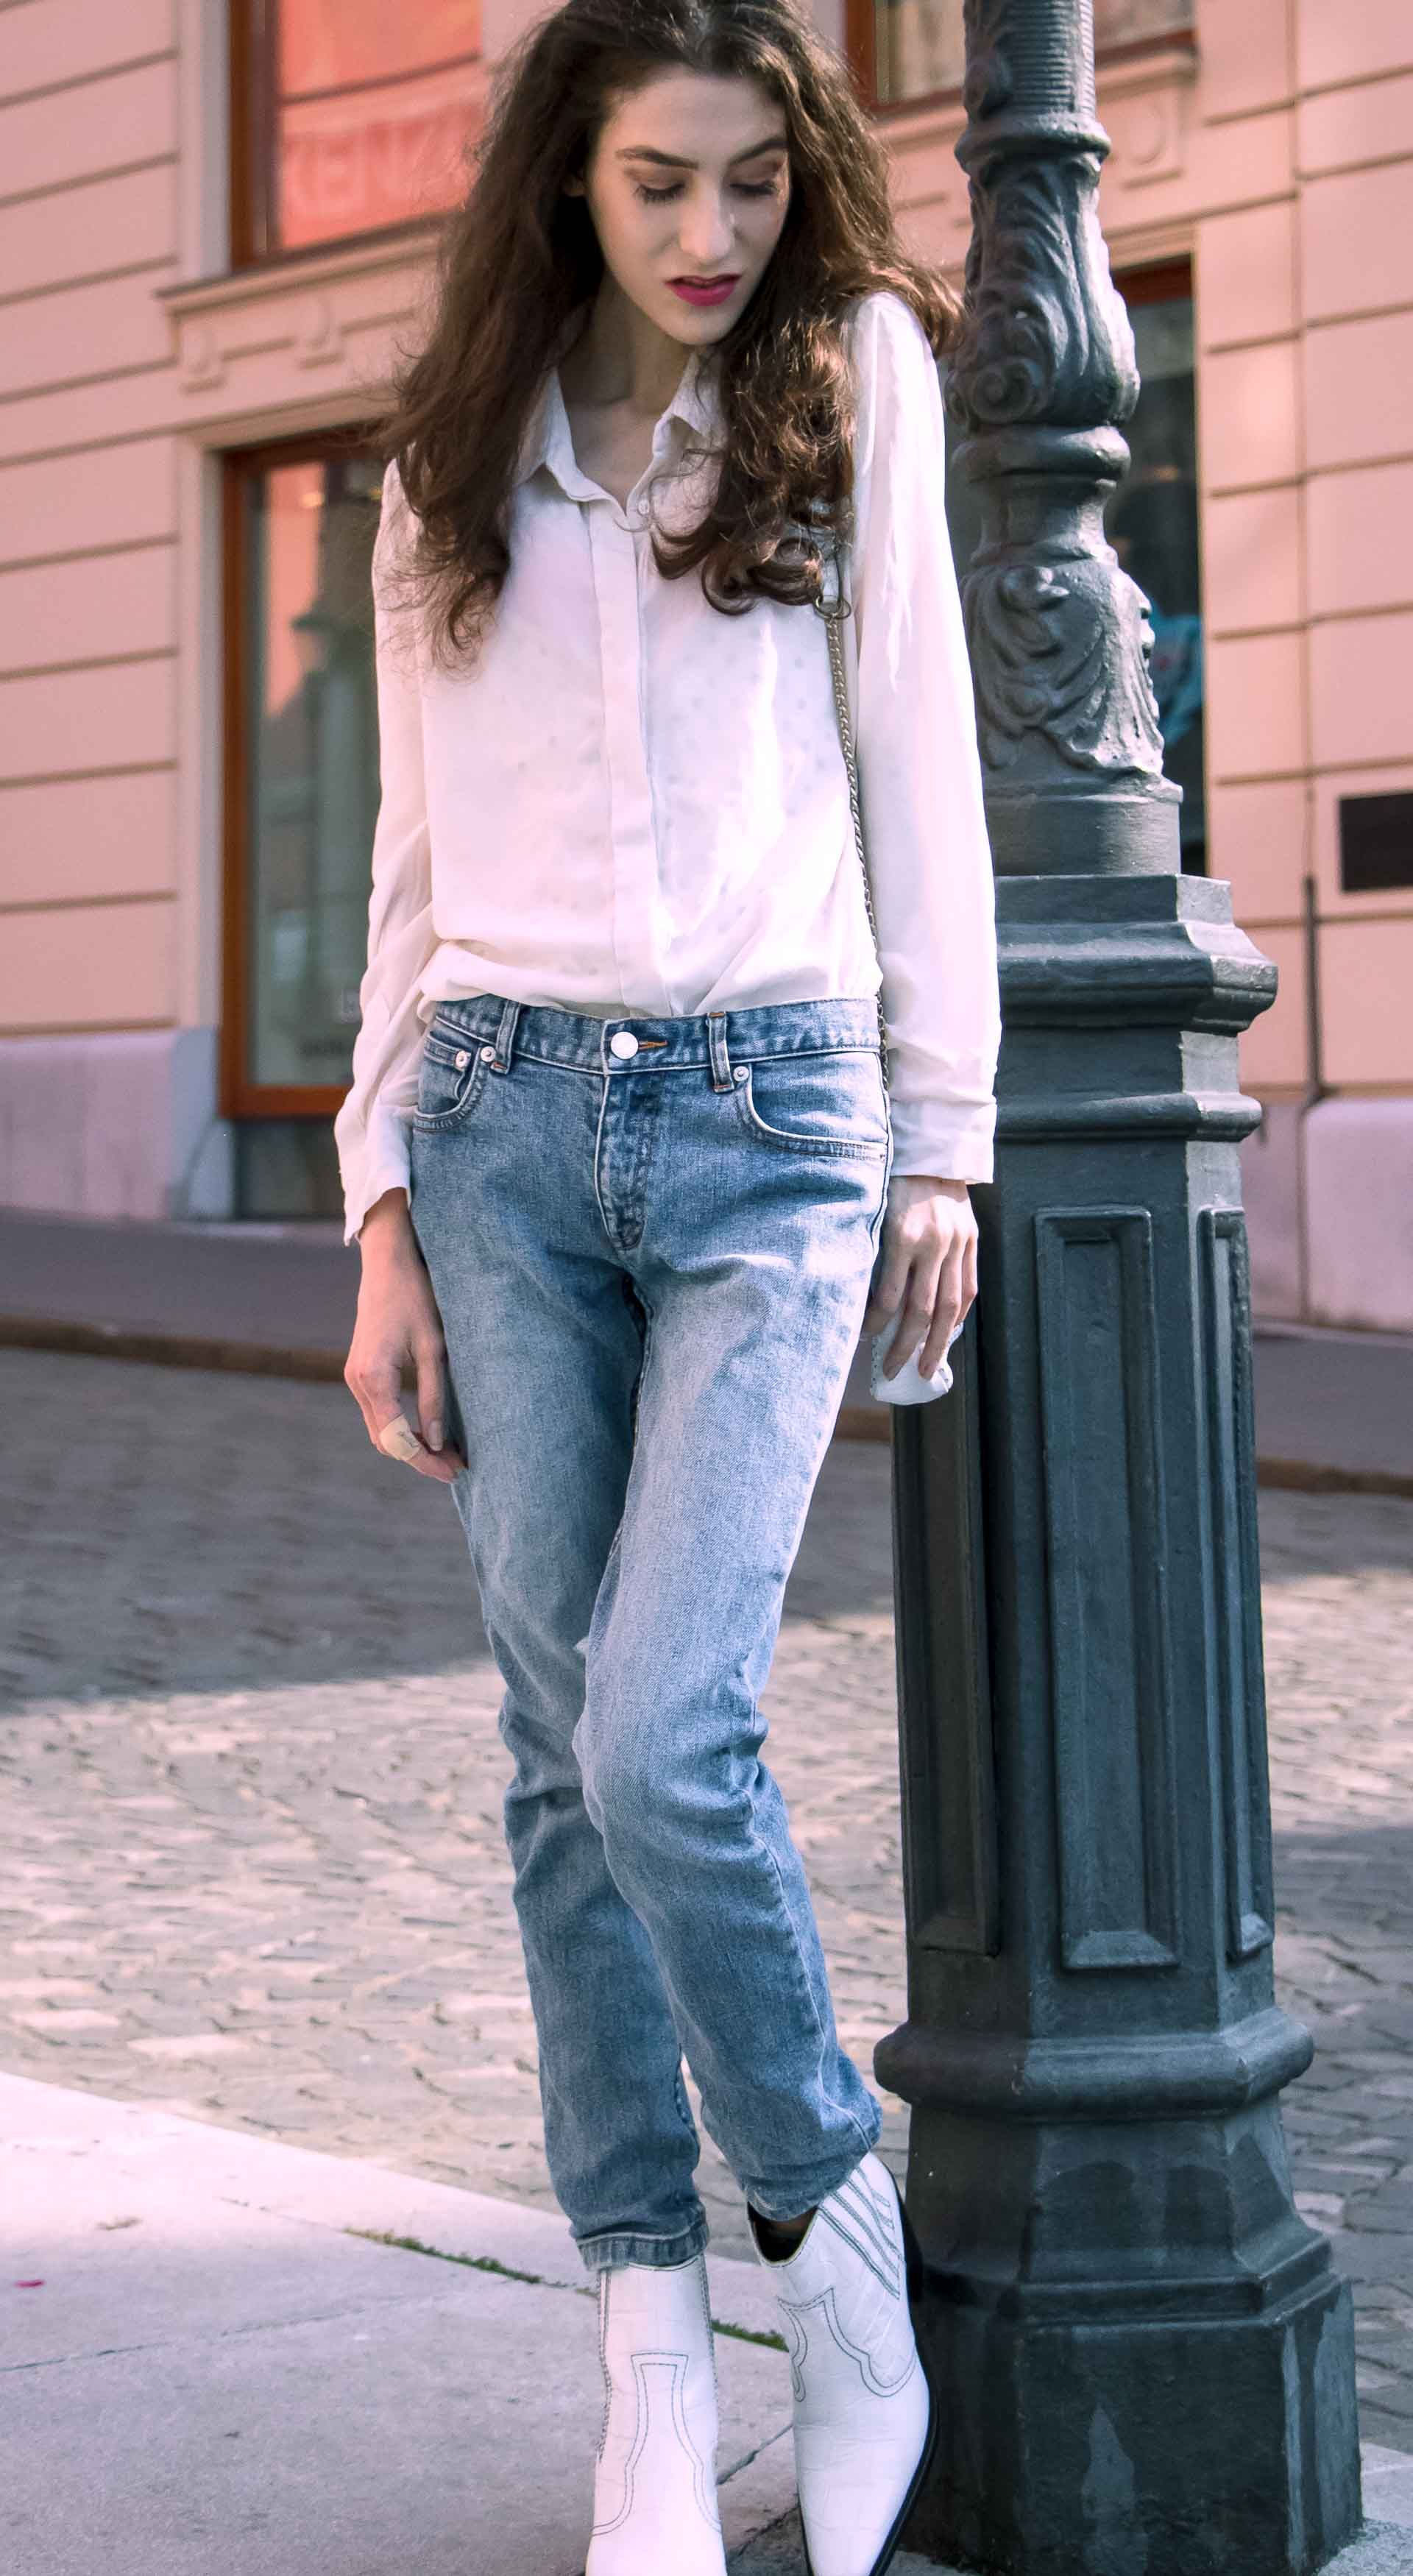 Beautiful Slovenian Fashion Blogger Veronika Lipar of Brunette from Wall wearing white silk shirt from Sandro Paris, white and black polka dot cami slip top, A.P.C. light blue jeans, white Ganni Western boots, chain strap shoulder bag standing by the street lamp